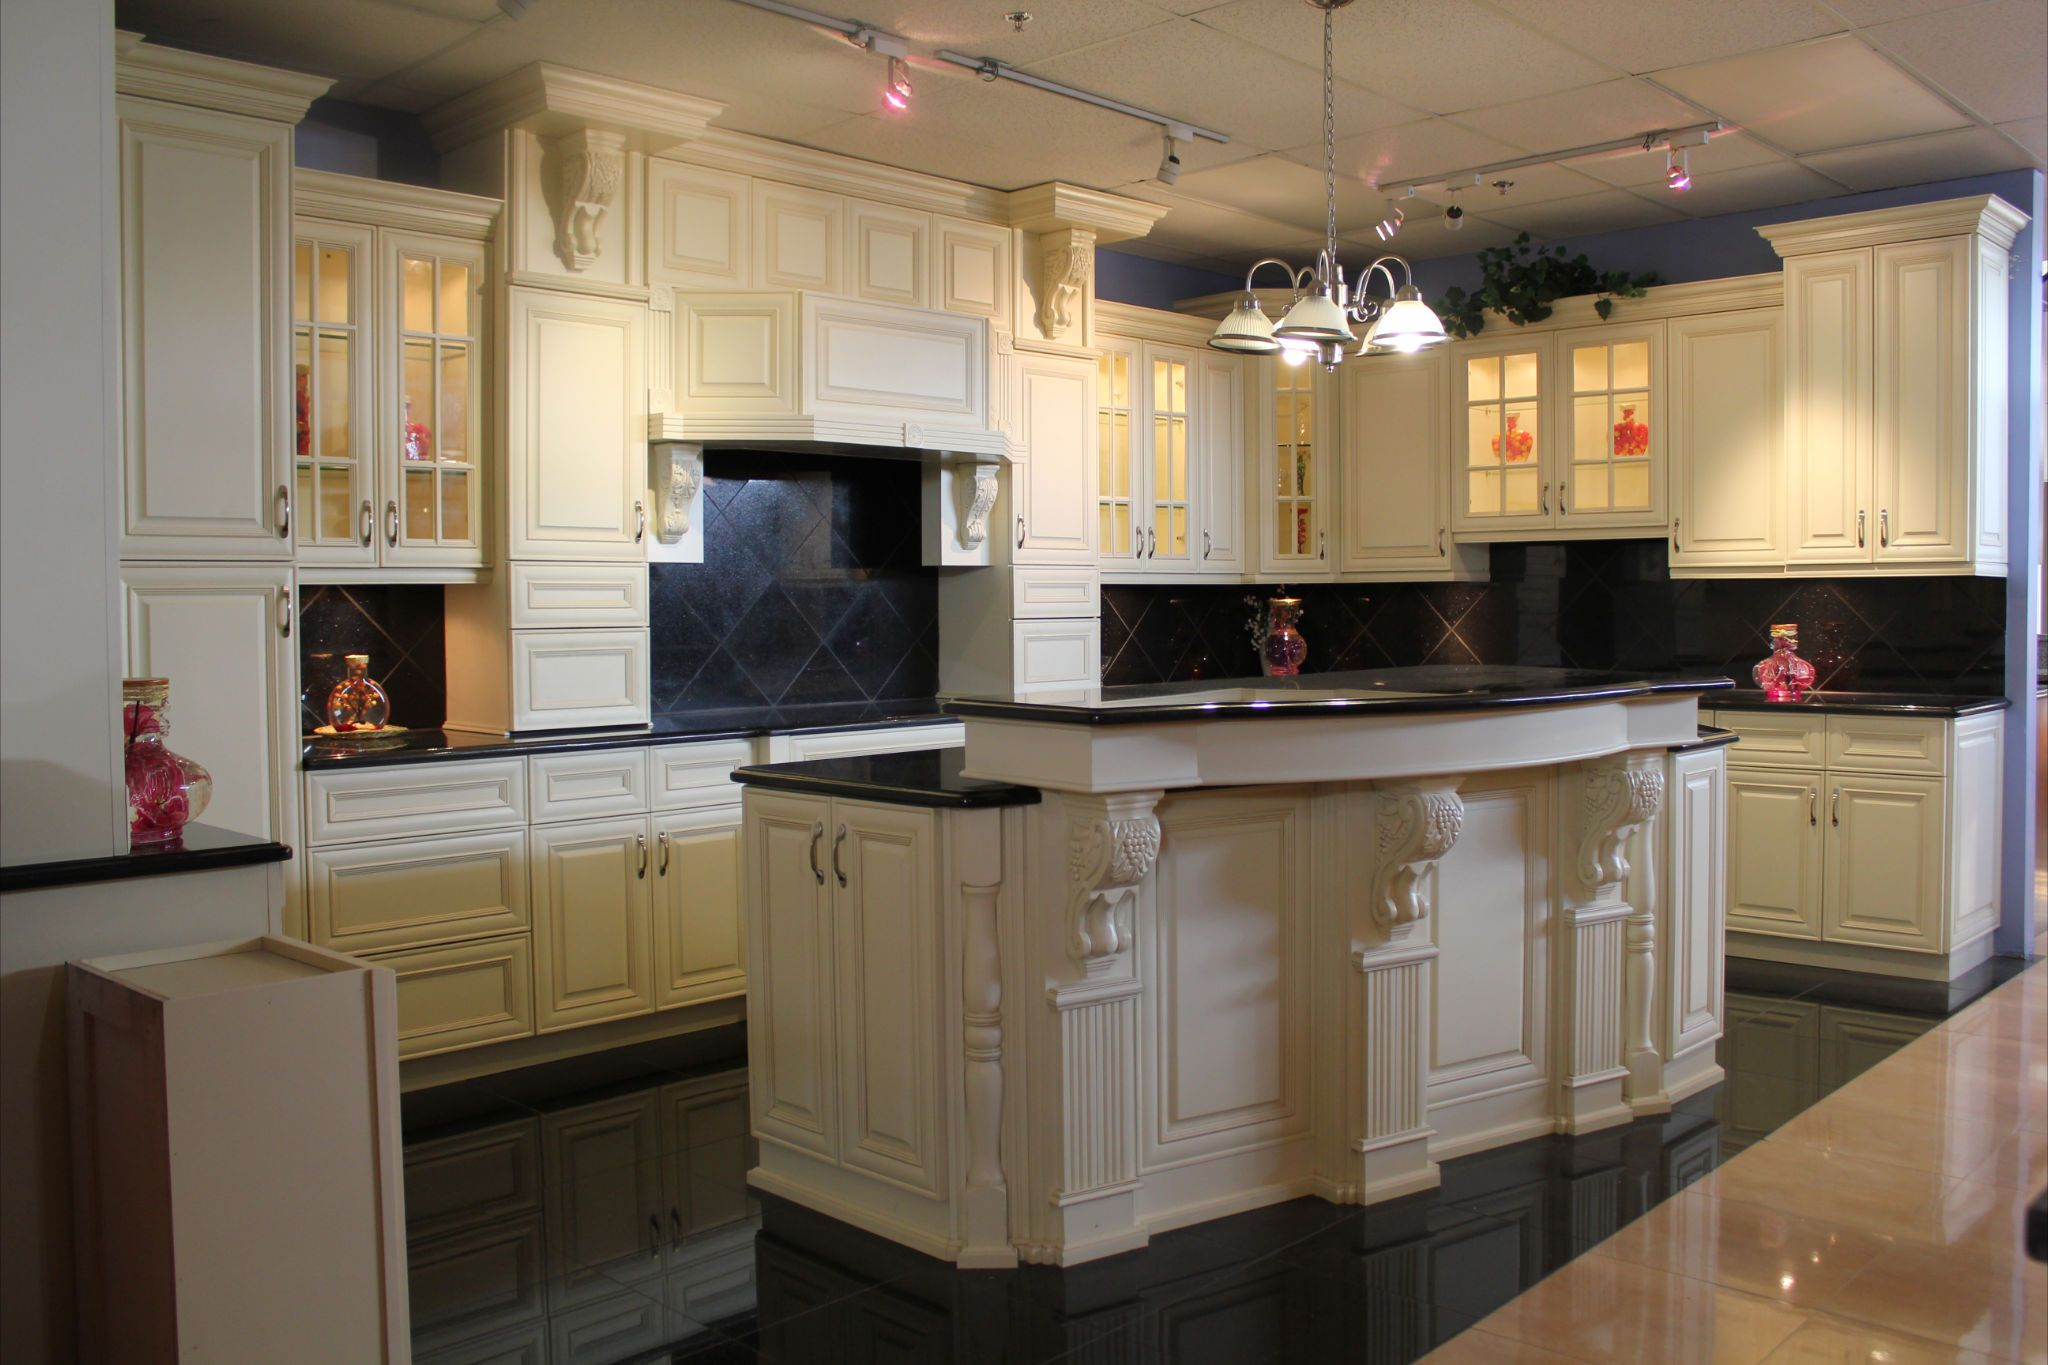 Best Antique White Cabinets With Black Granite Tops As Island 400 x 300